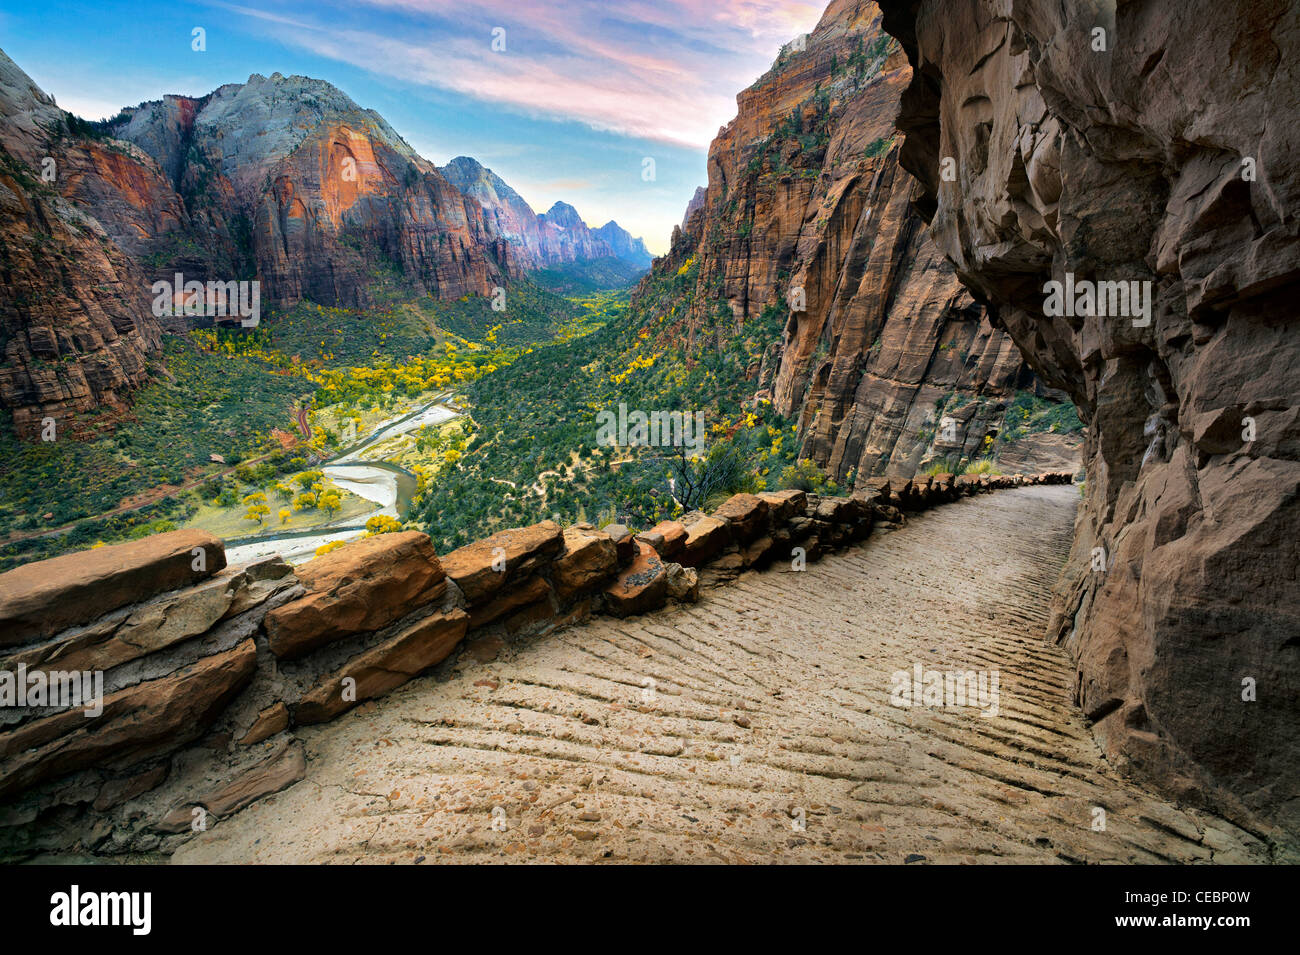 Angel's Landing trail and view of zion valley. Zion National Park, Utah - Stock Image